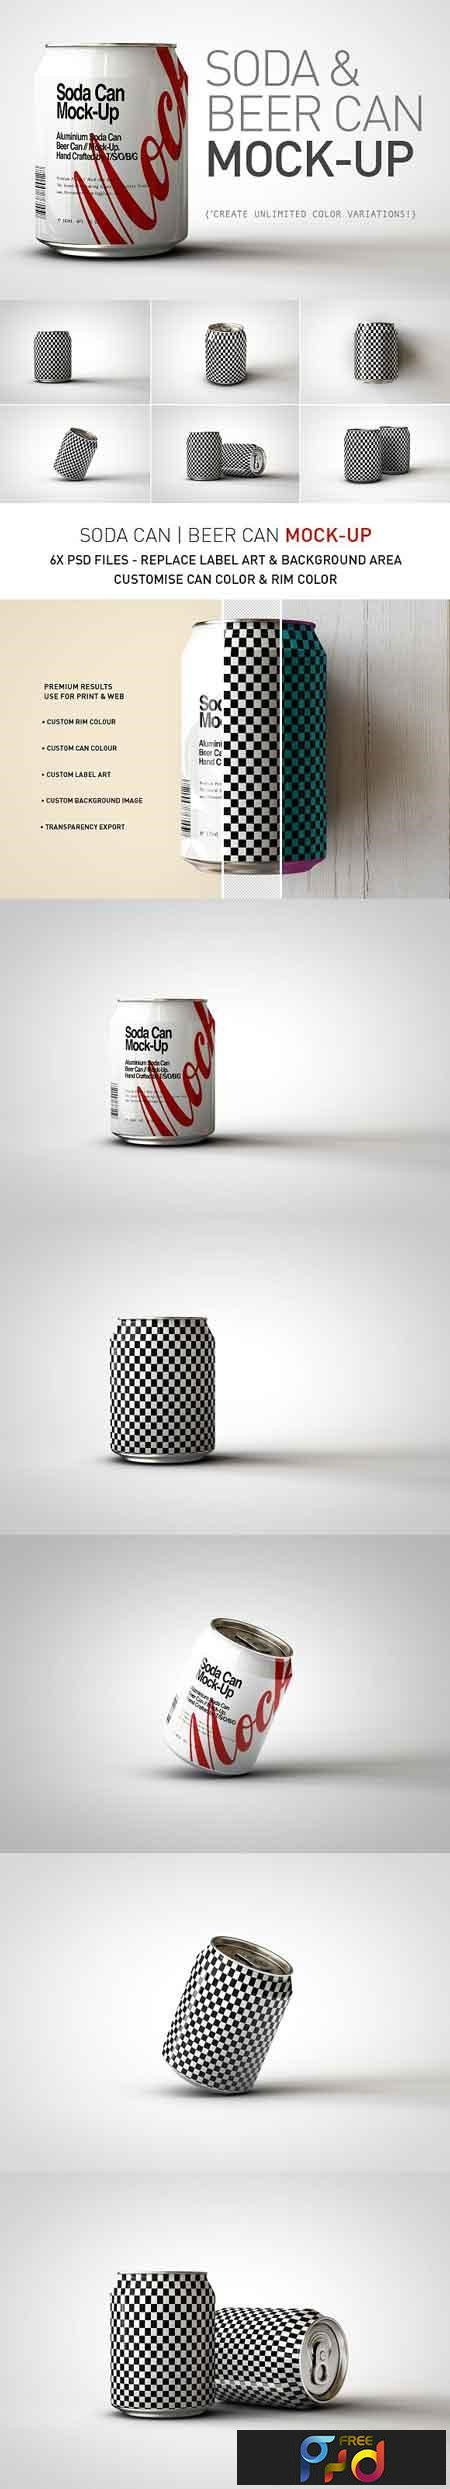 Mini Soda Can Beer Can Mock-Up V3 2895657 1